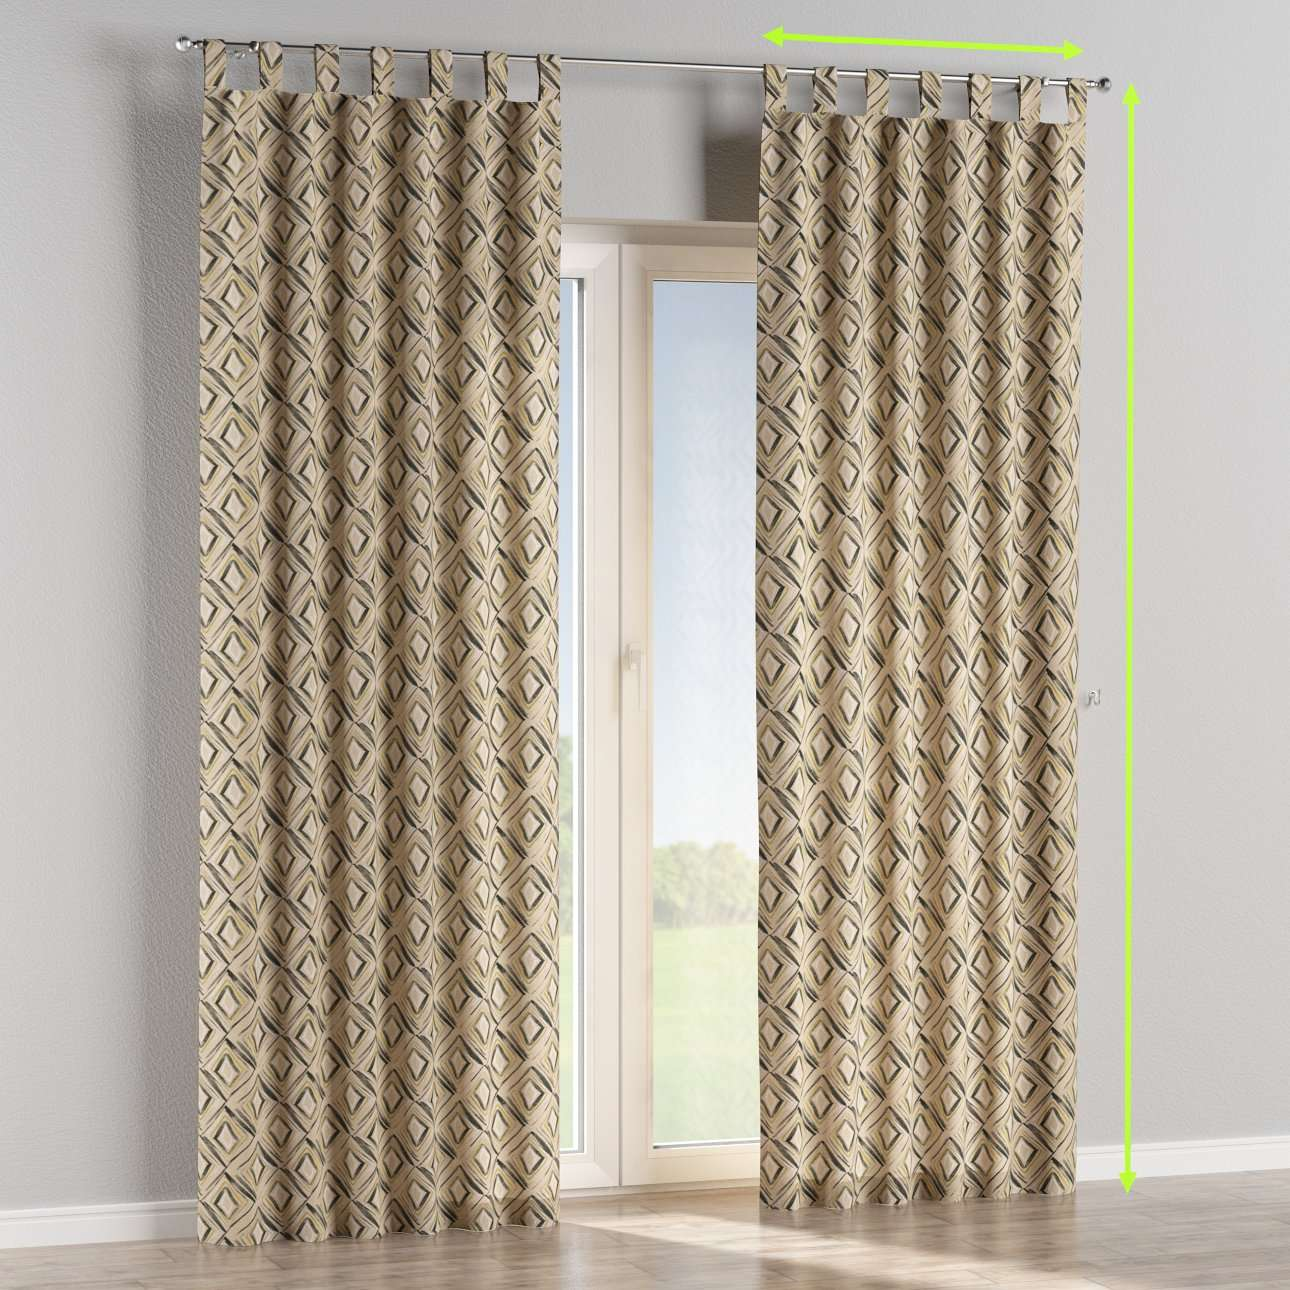 Tab top curtains in collection Londres, fabric: 140-46